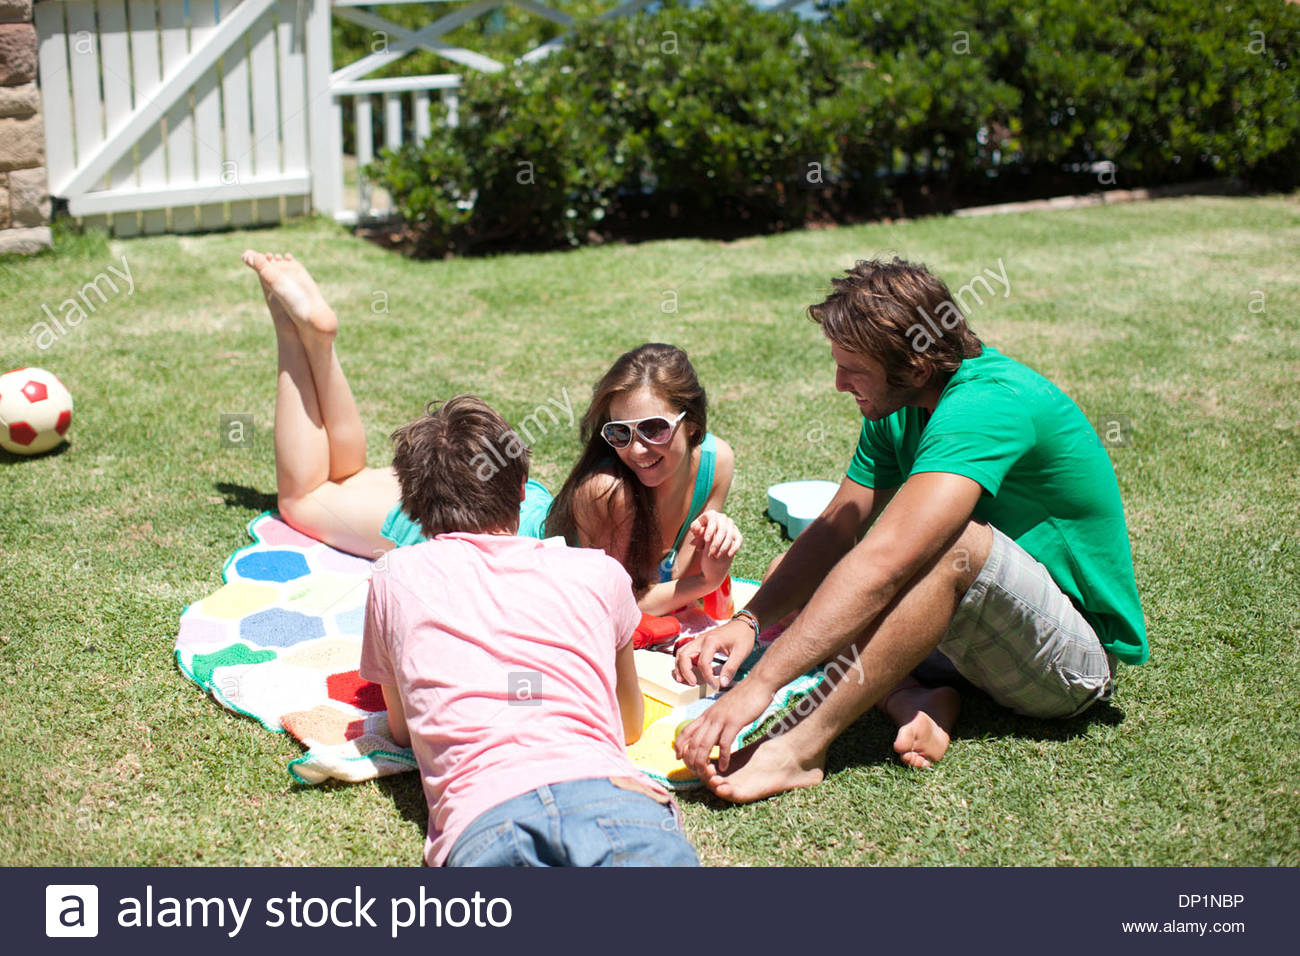 Friends relaxing with books and drinks on blanket in sunny grass - Stock Image